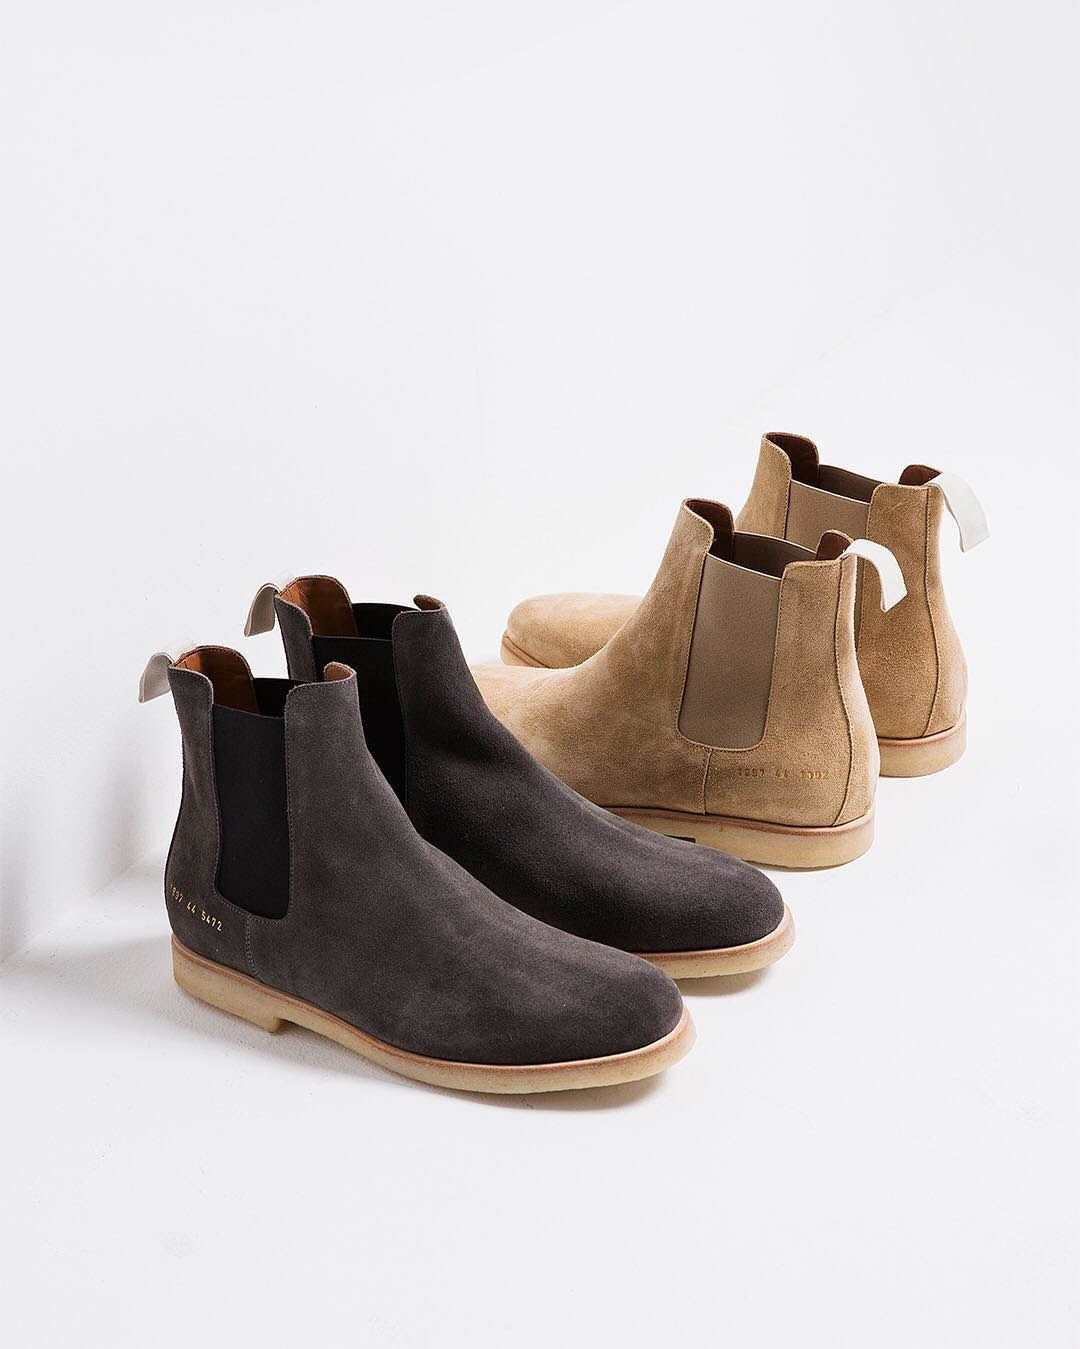 Suede Chelsea Boots. #commonprojects